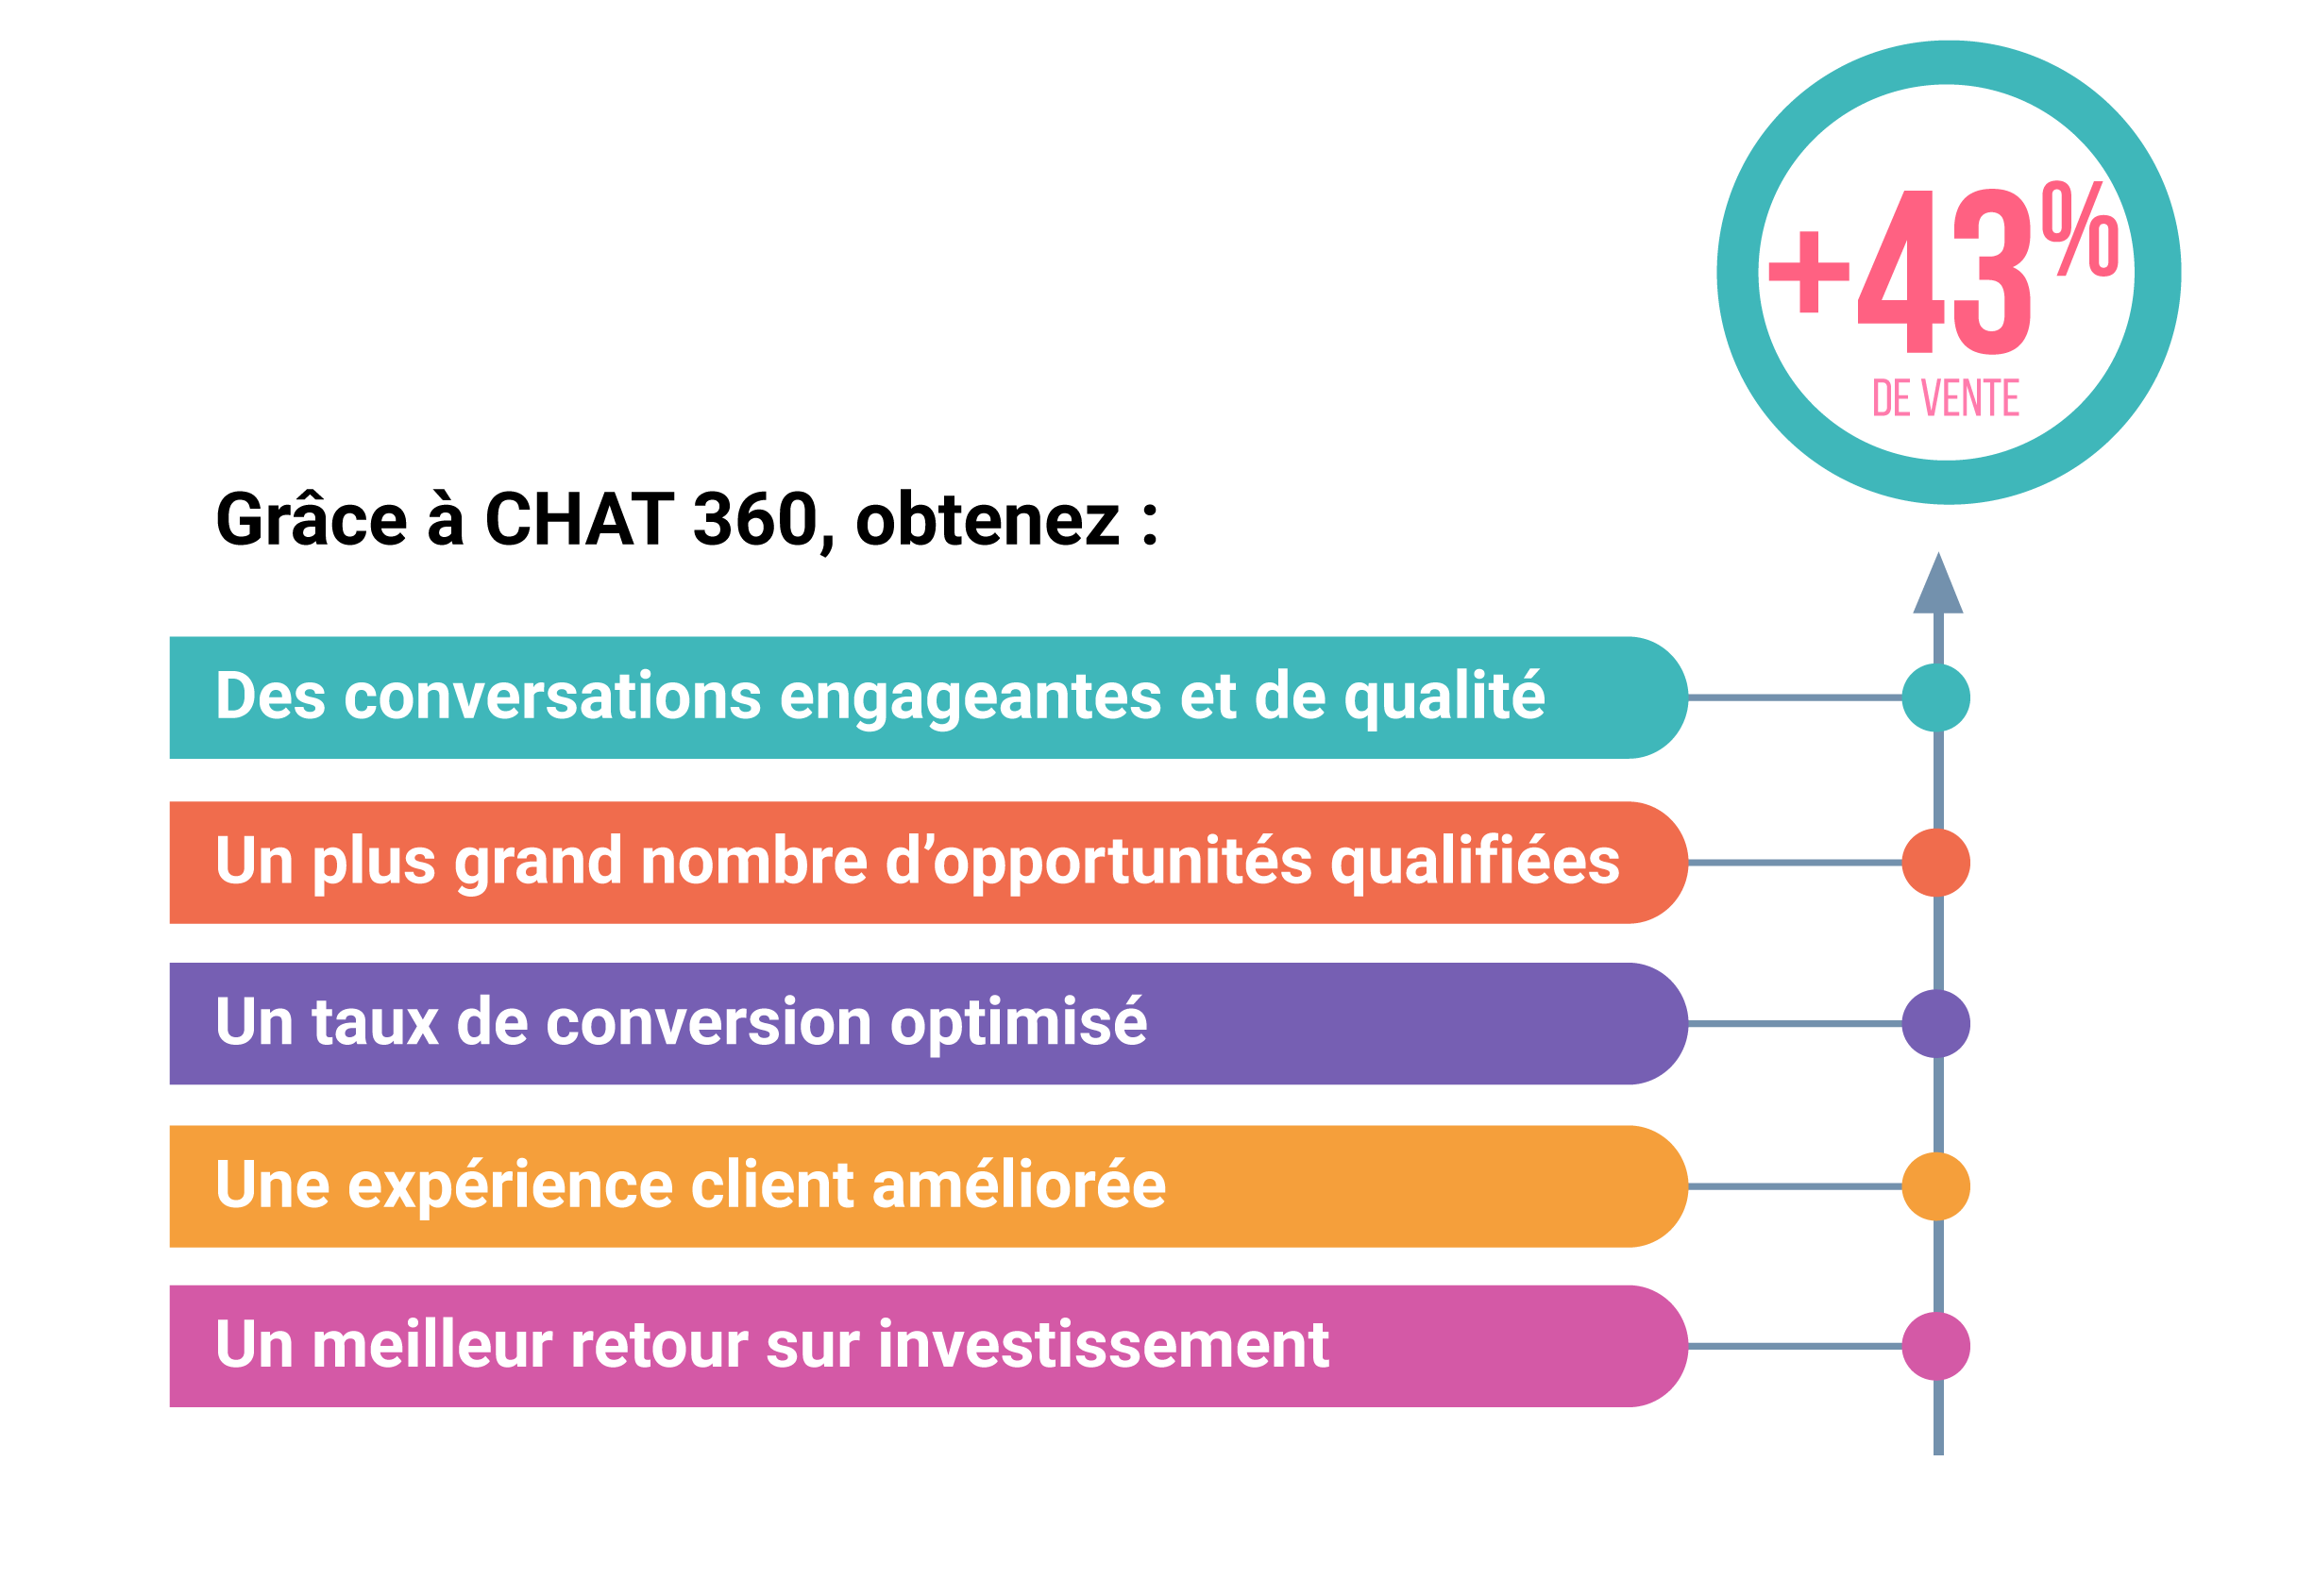 etude comparative -chat360